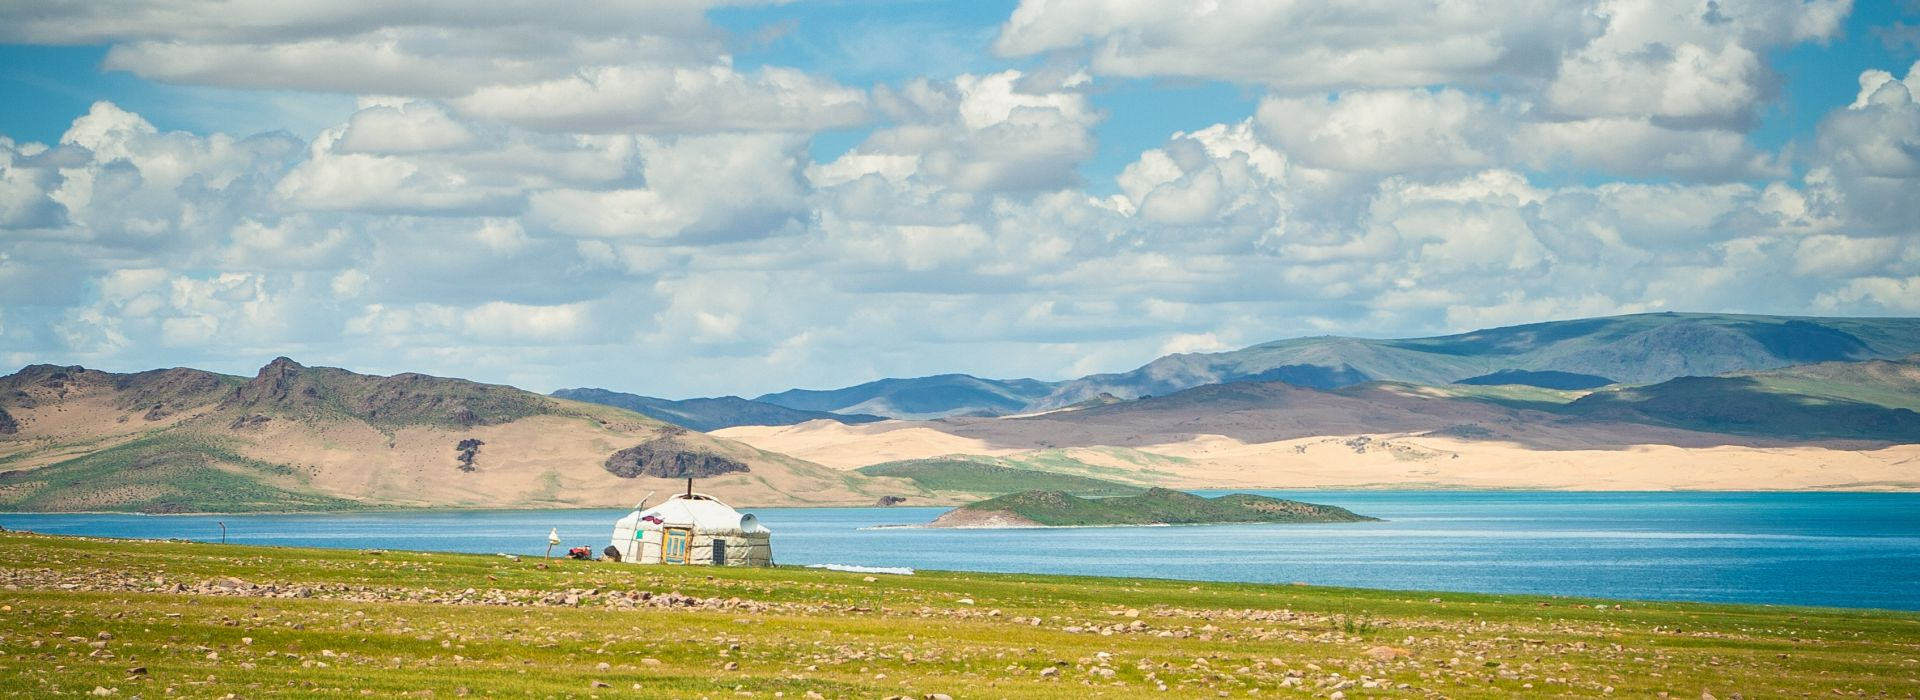 Travelling Mongolia - Tours and Trips in Mongolia